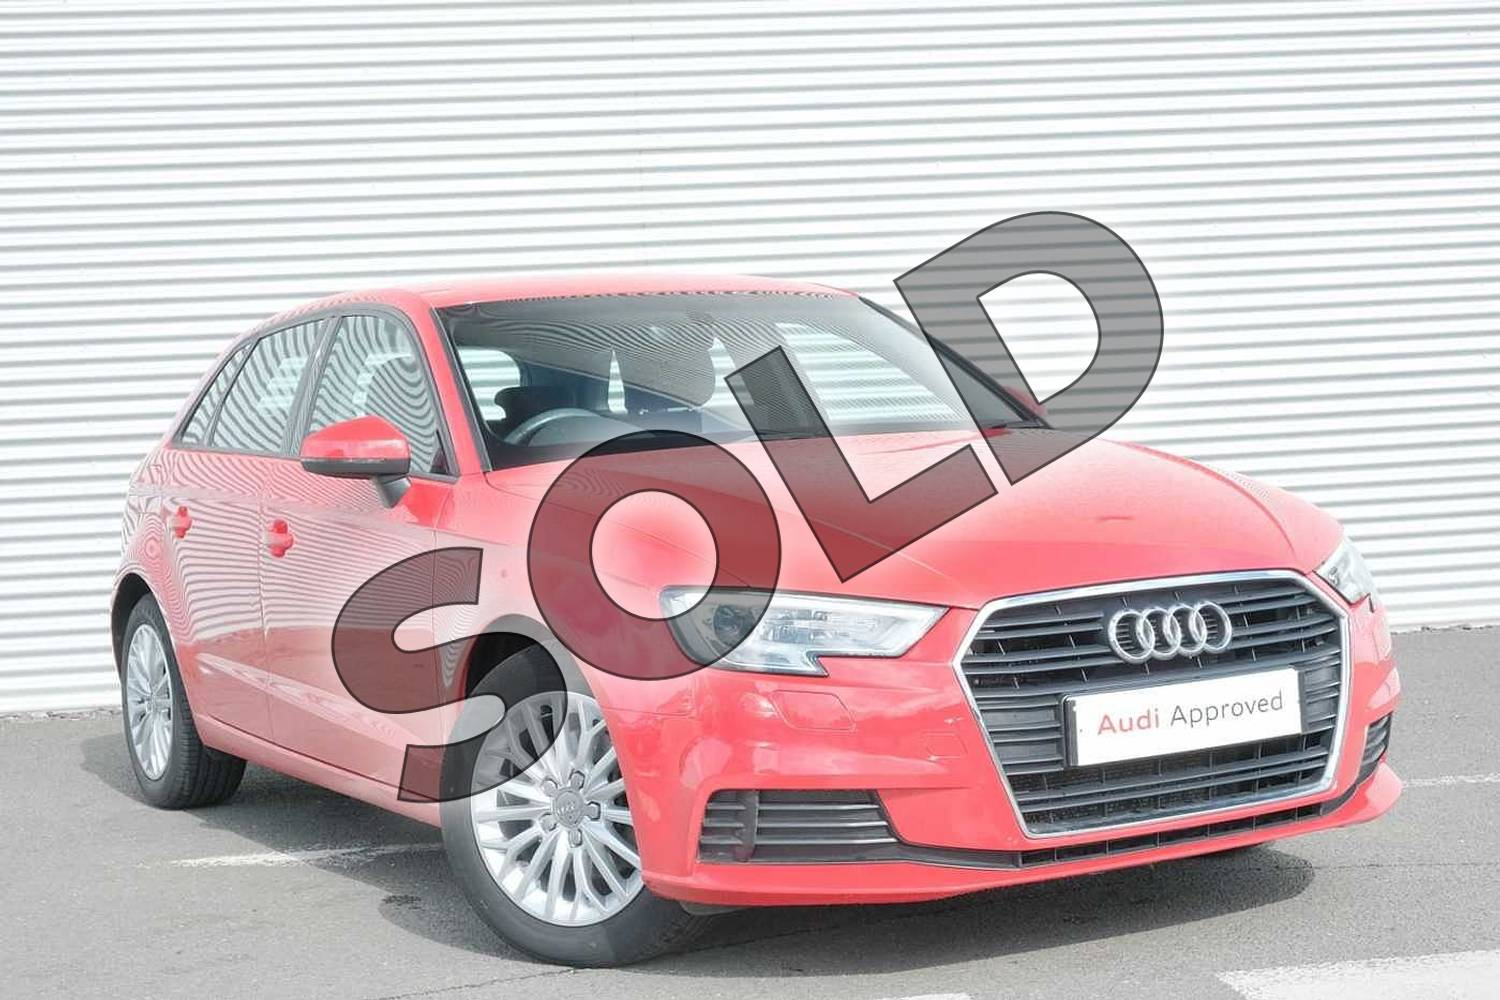 2017 Audi A3 Diesel Sportback 1.6 TDI SE Technik 5dr S Tronic in Tango Red Metallic at Coventry Audi